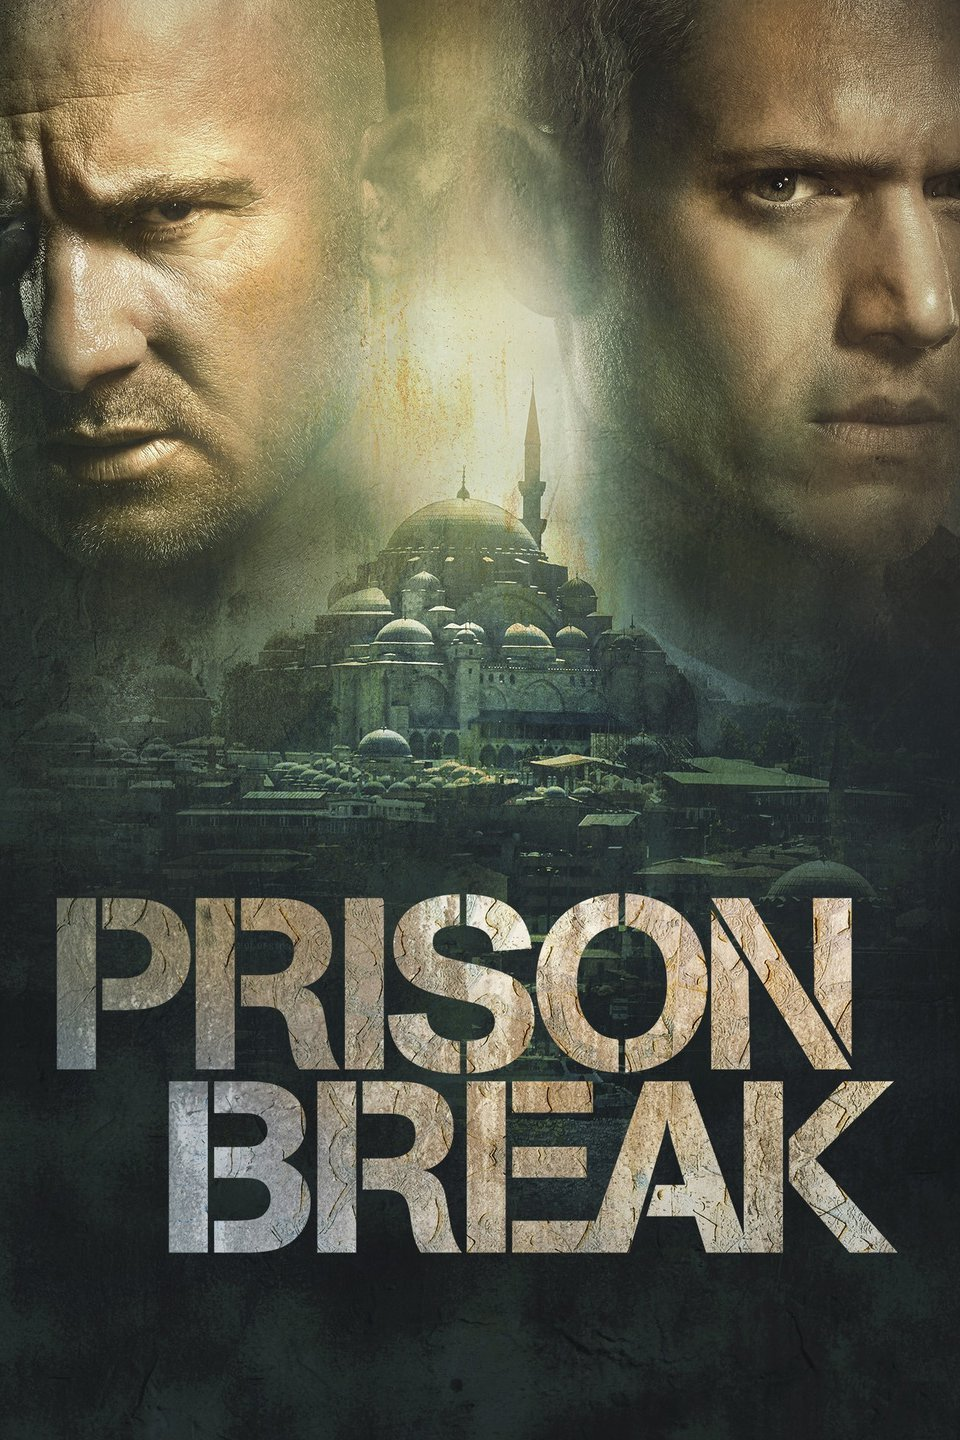 Prison Break S02 Complete 480p WEB-DL Micromkv